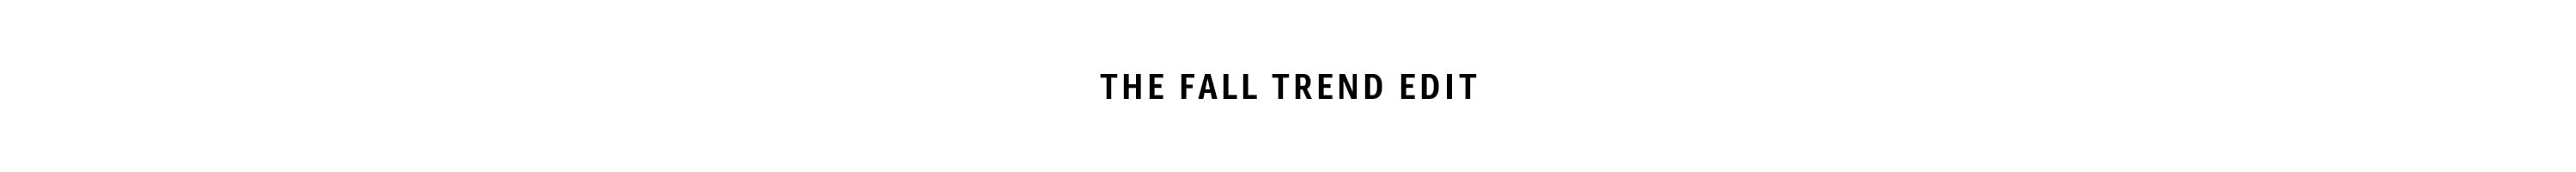 The Fall Trend Edit